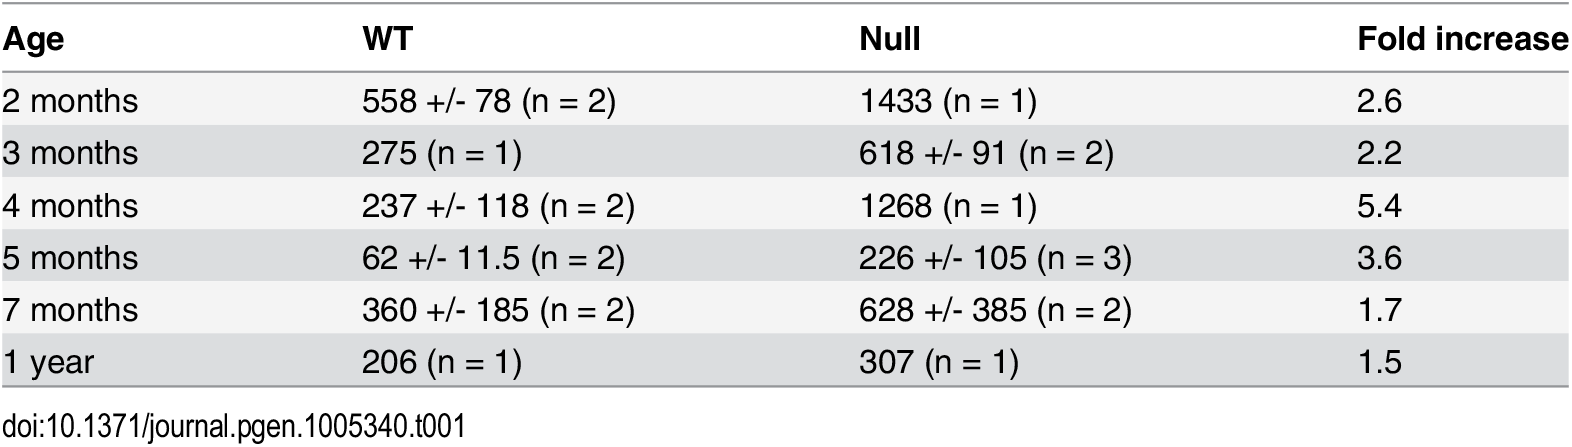 Creatine kinase activities in blood samples from wildtype and <i>Fbn2</i> null mice.